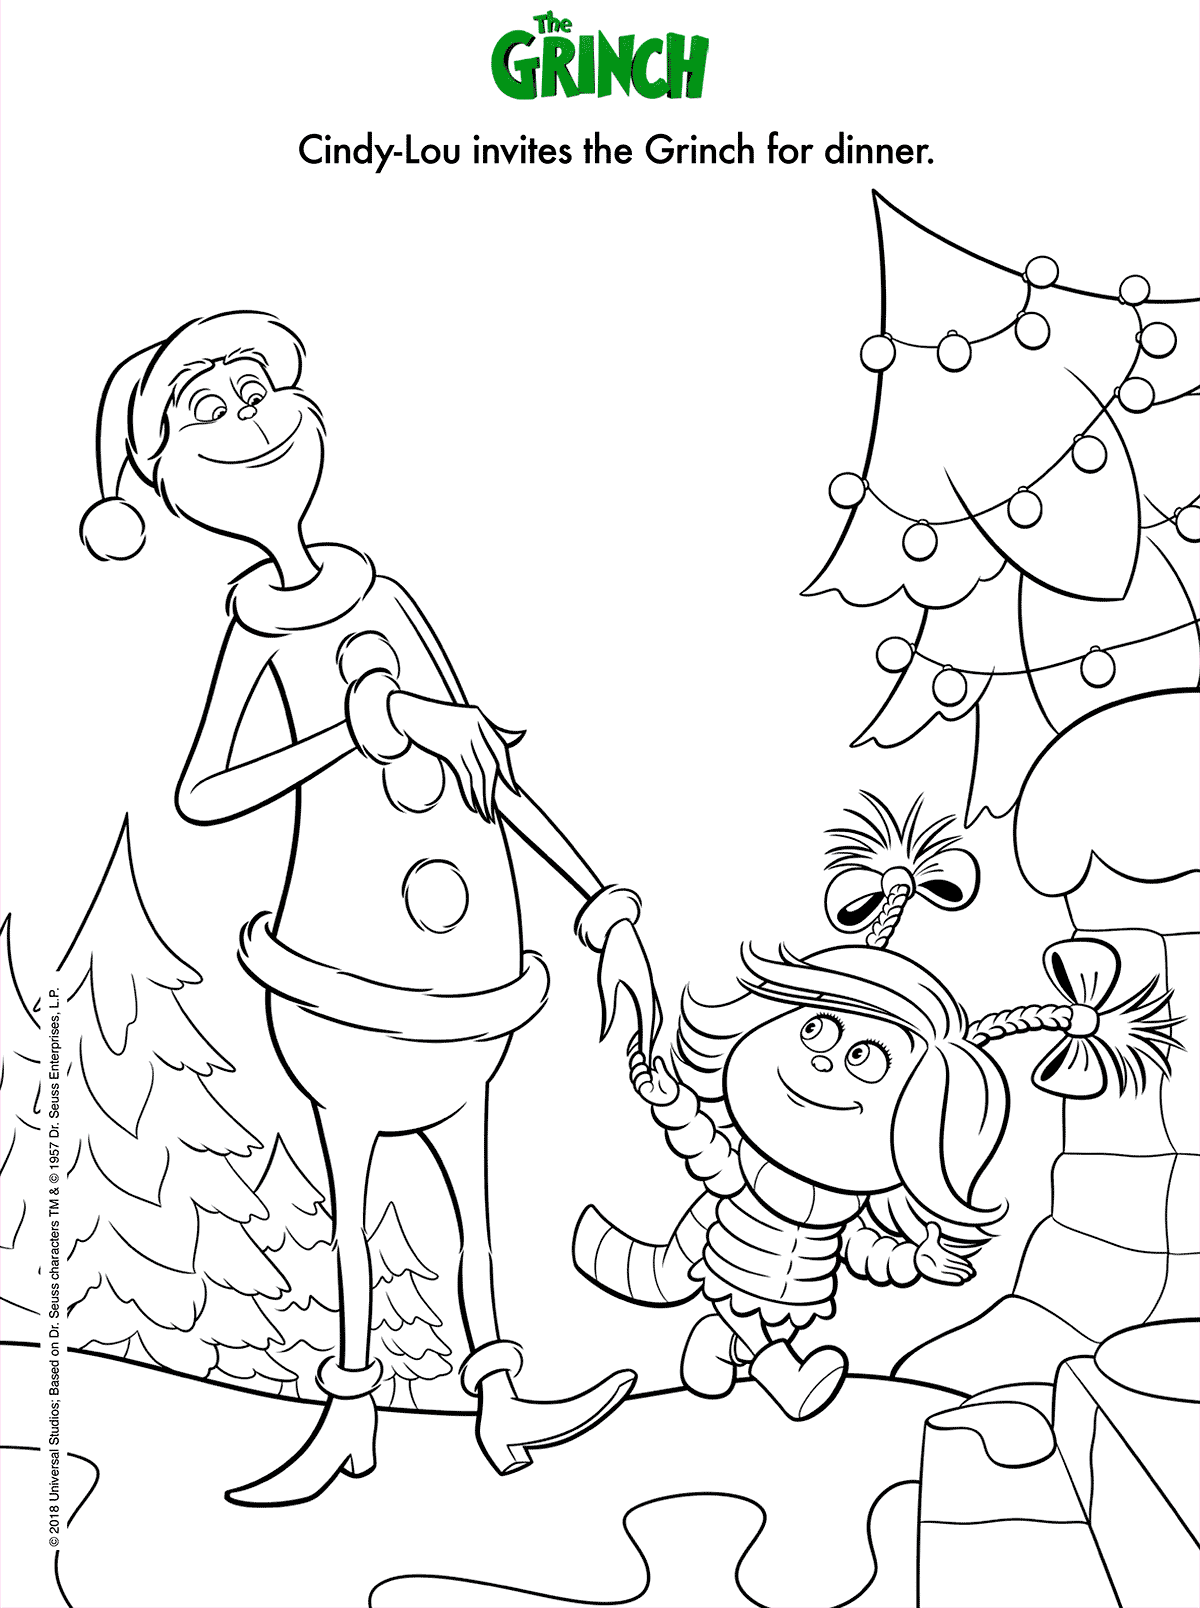 Dr Seuss The Grinch Film Coloring Page